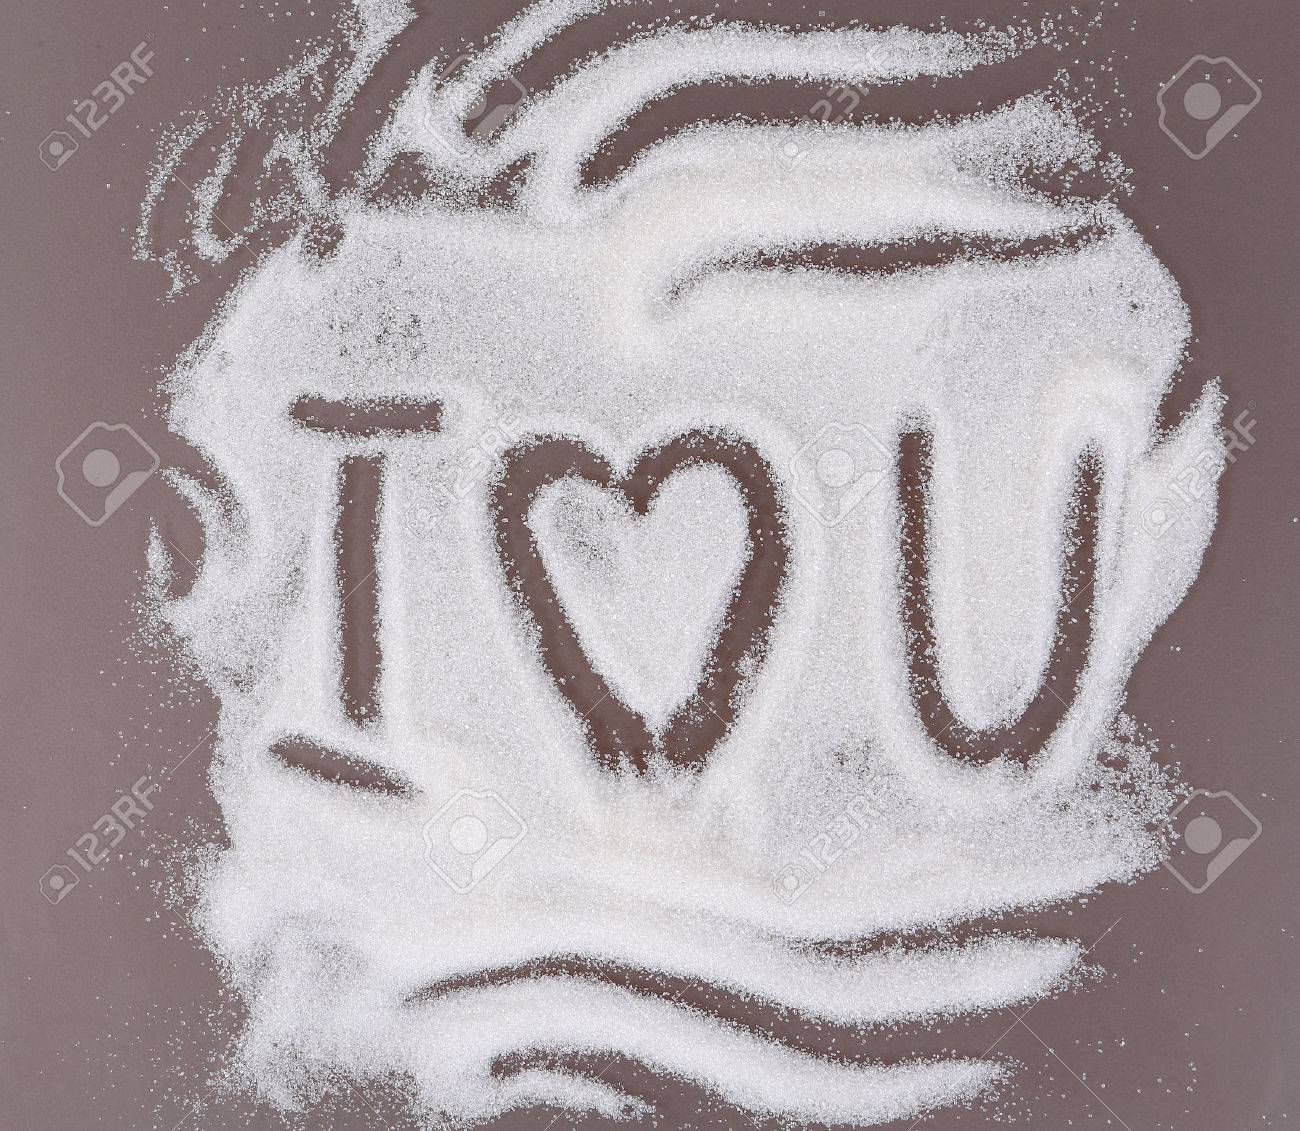 Declaration Of Love Written On The Sugar Scattered On A Kitchen ...